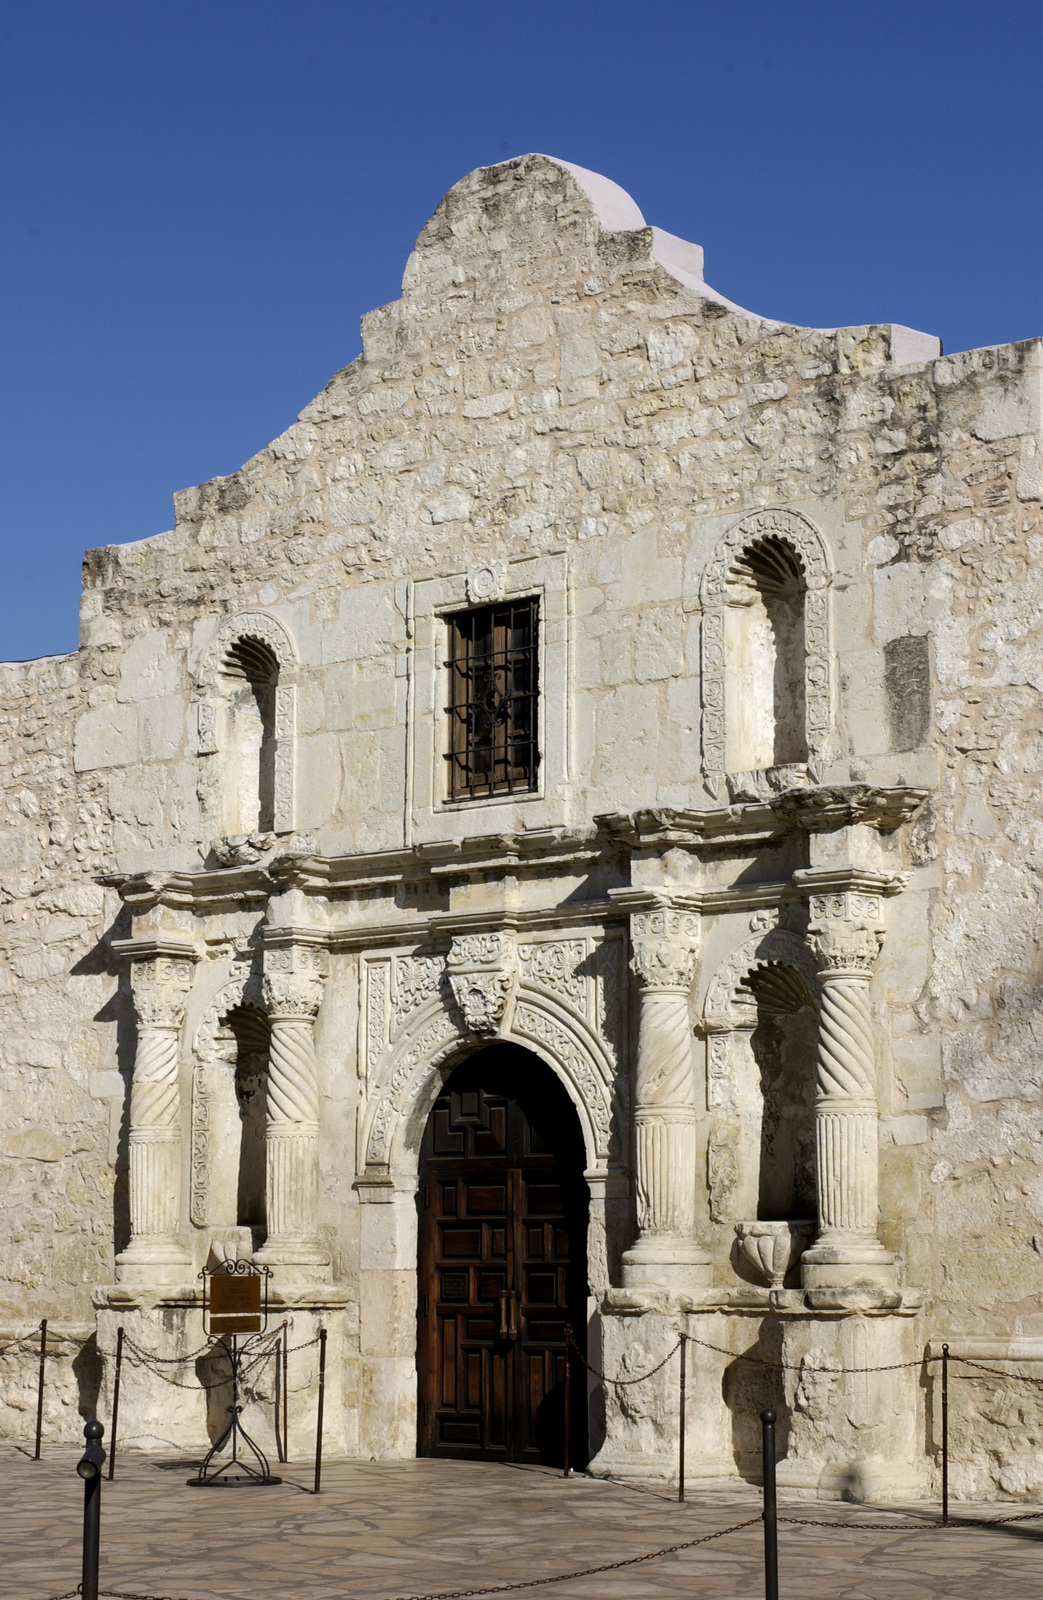 [Select views of}  San Antonio, Texas: City scenes, housing old and new, HUD officials